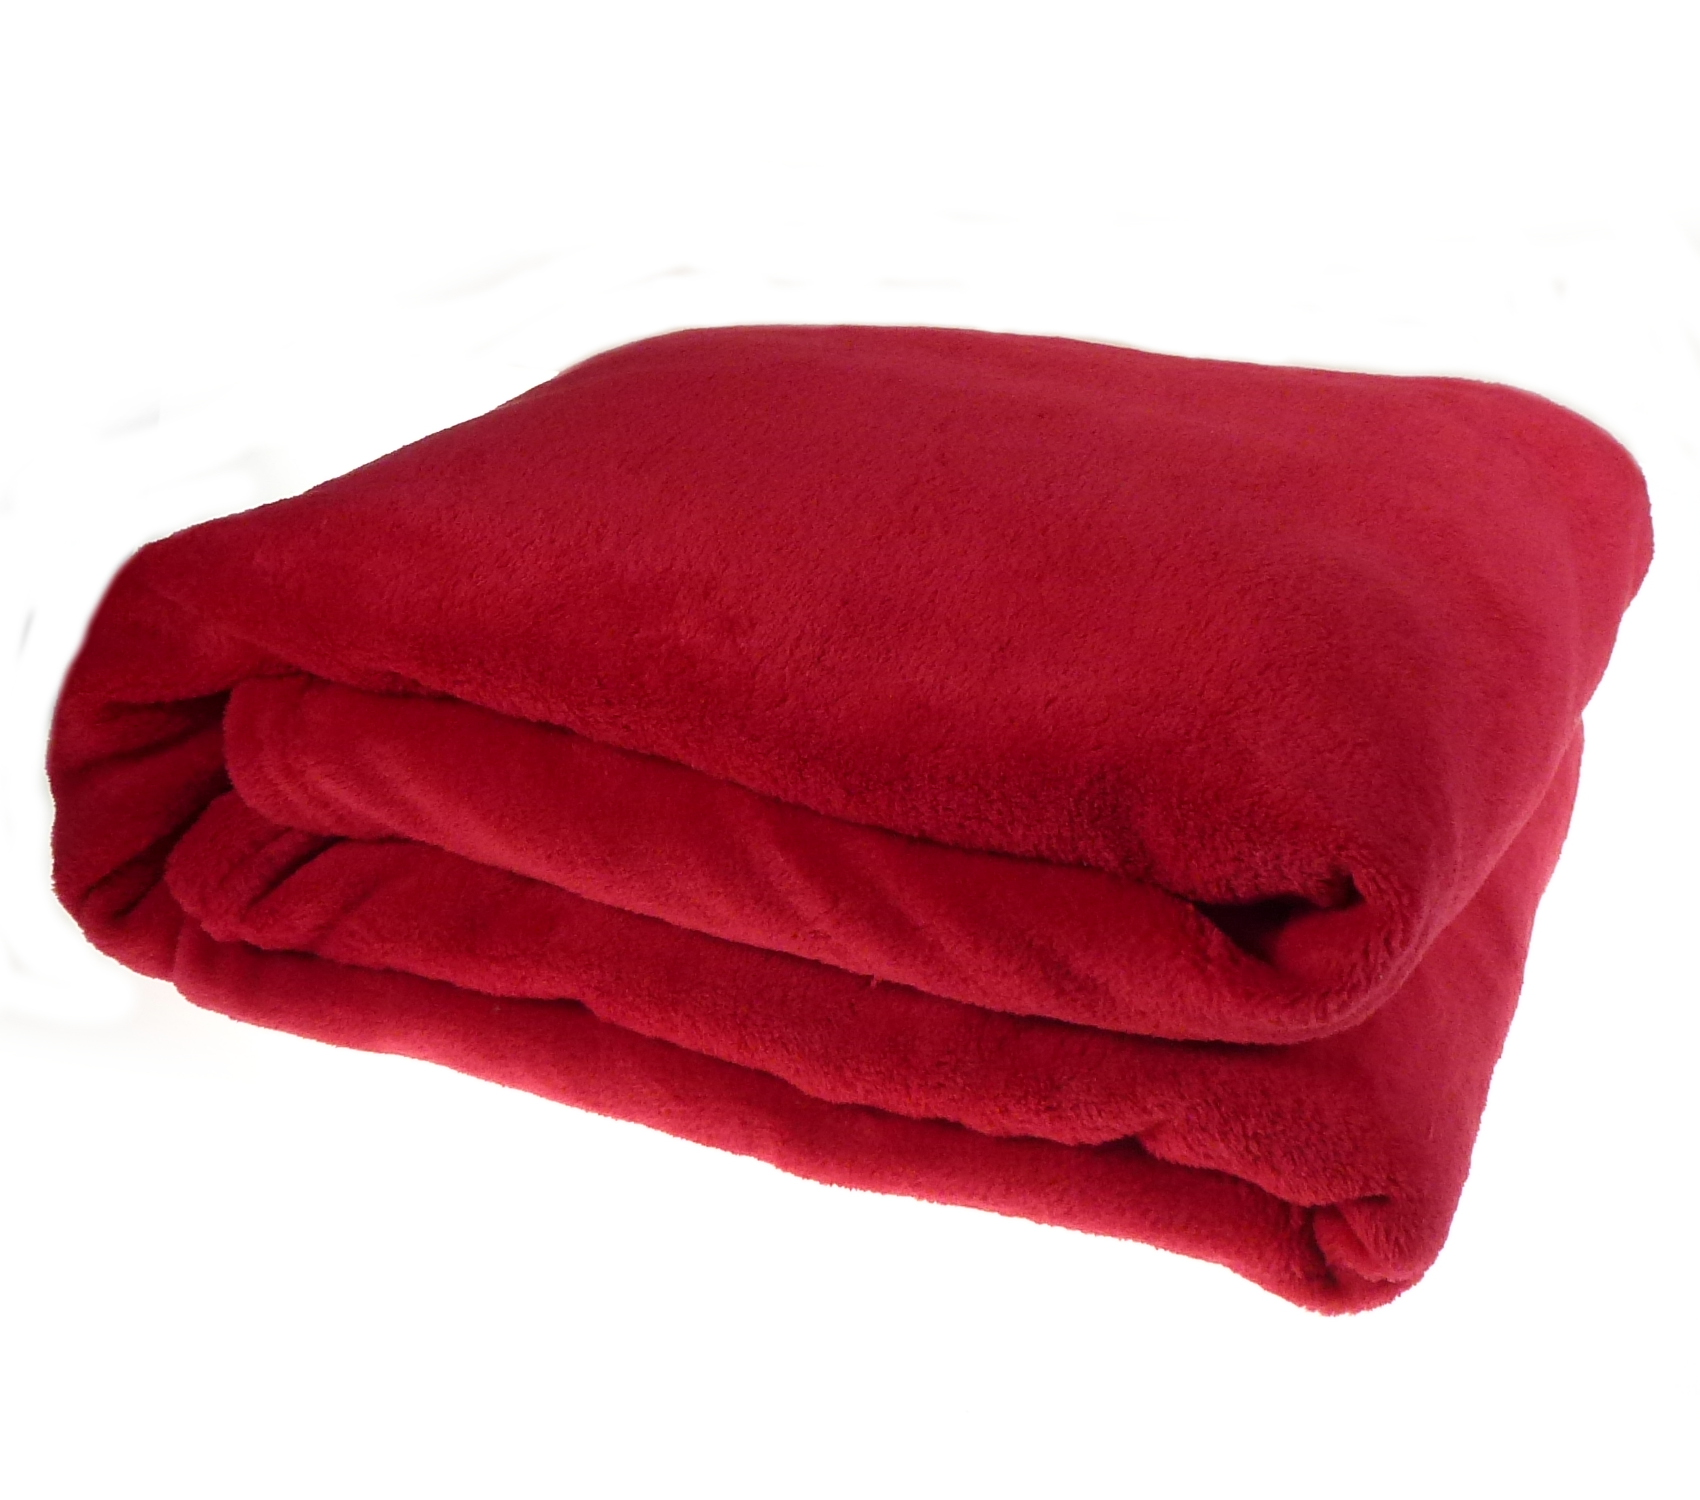 Soft Coral Fleece Blanket Cosy Warm Bed Sofa Luxury Fleecy